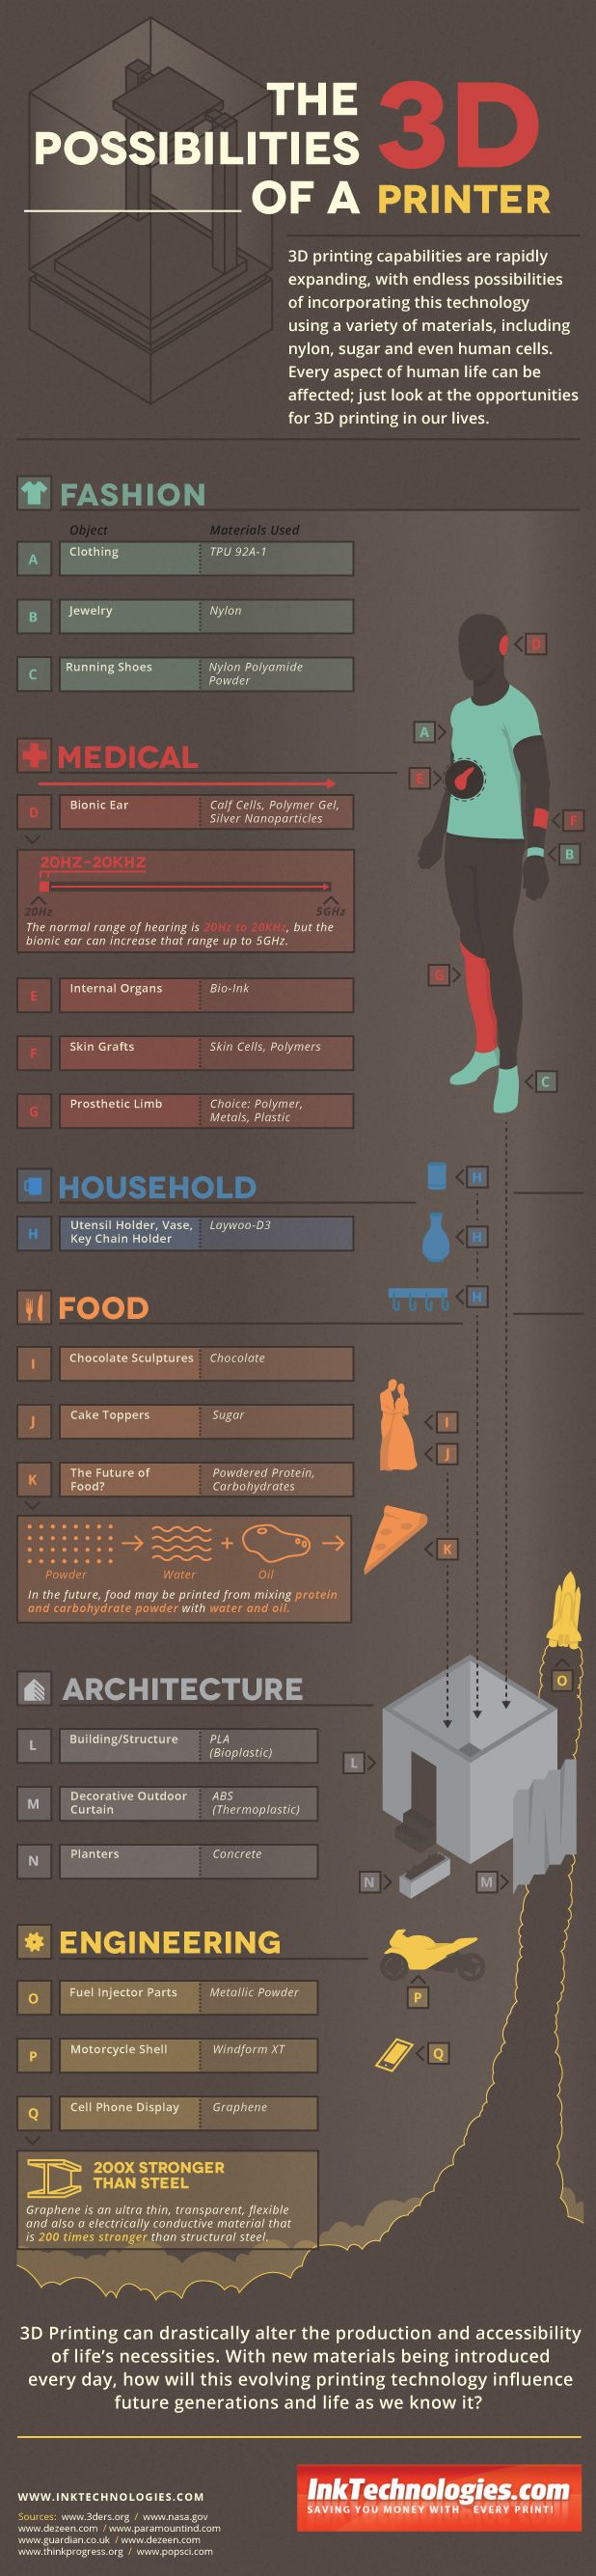 The Possibilties of a 3D Printer Infographic: printing clothes, skin, food, and more.